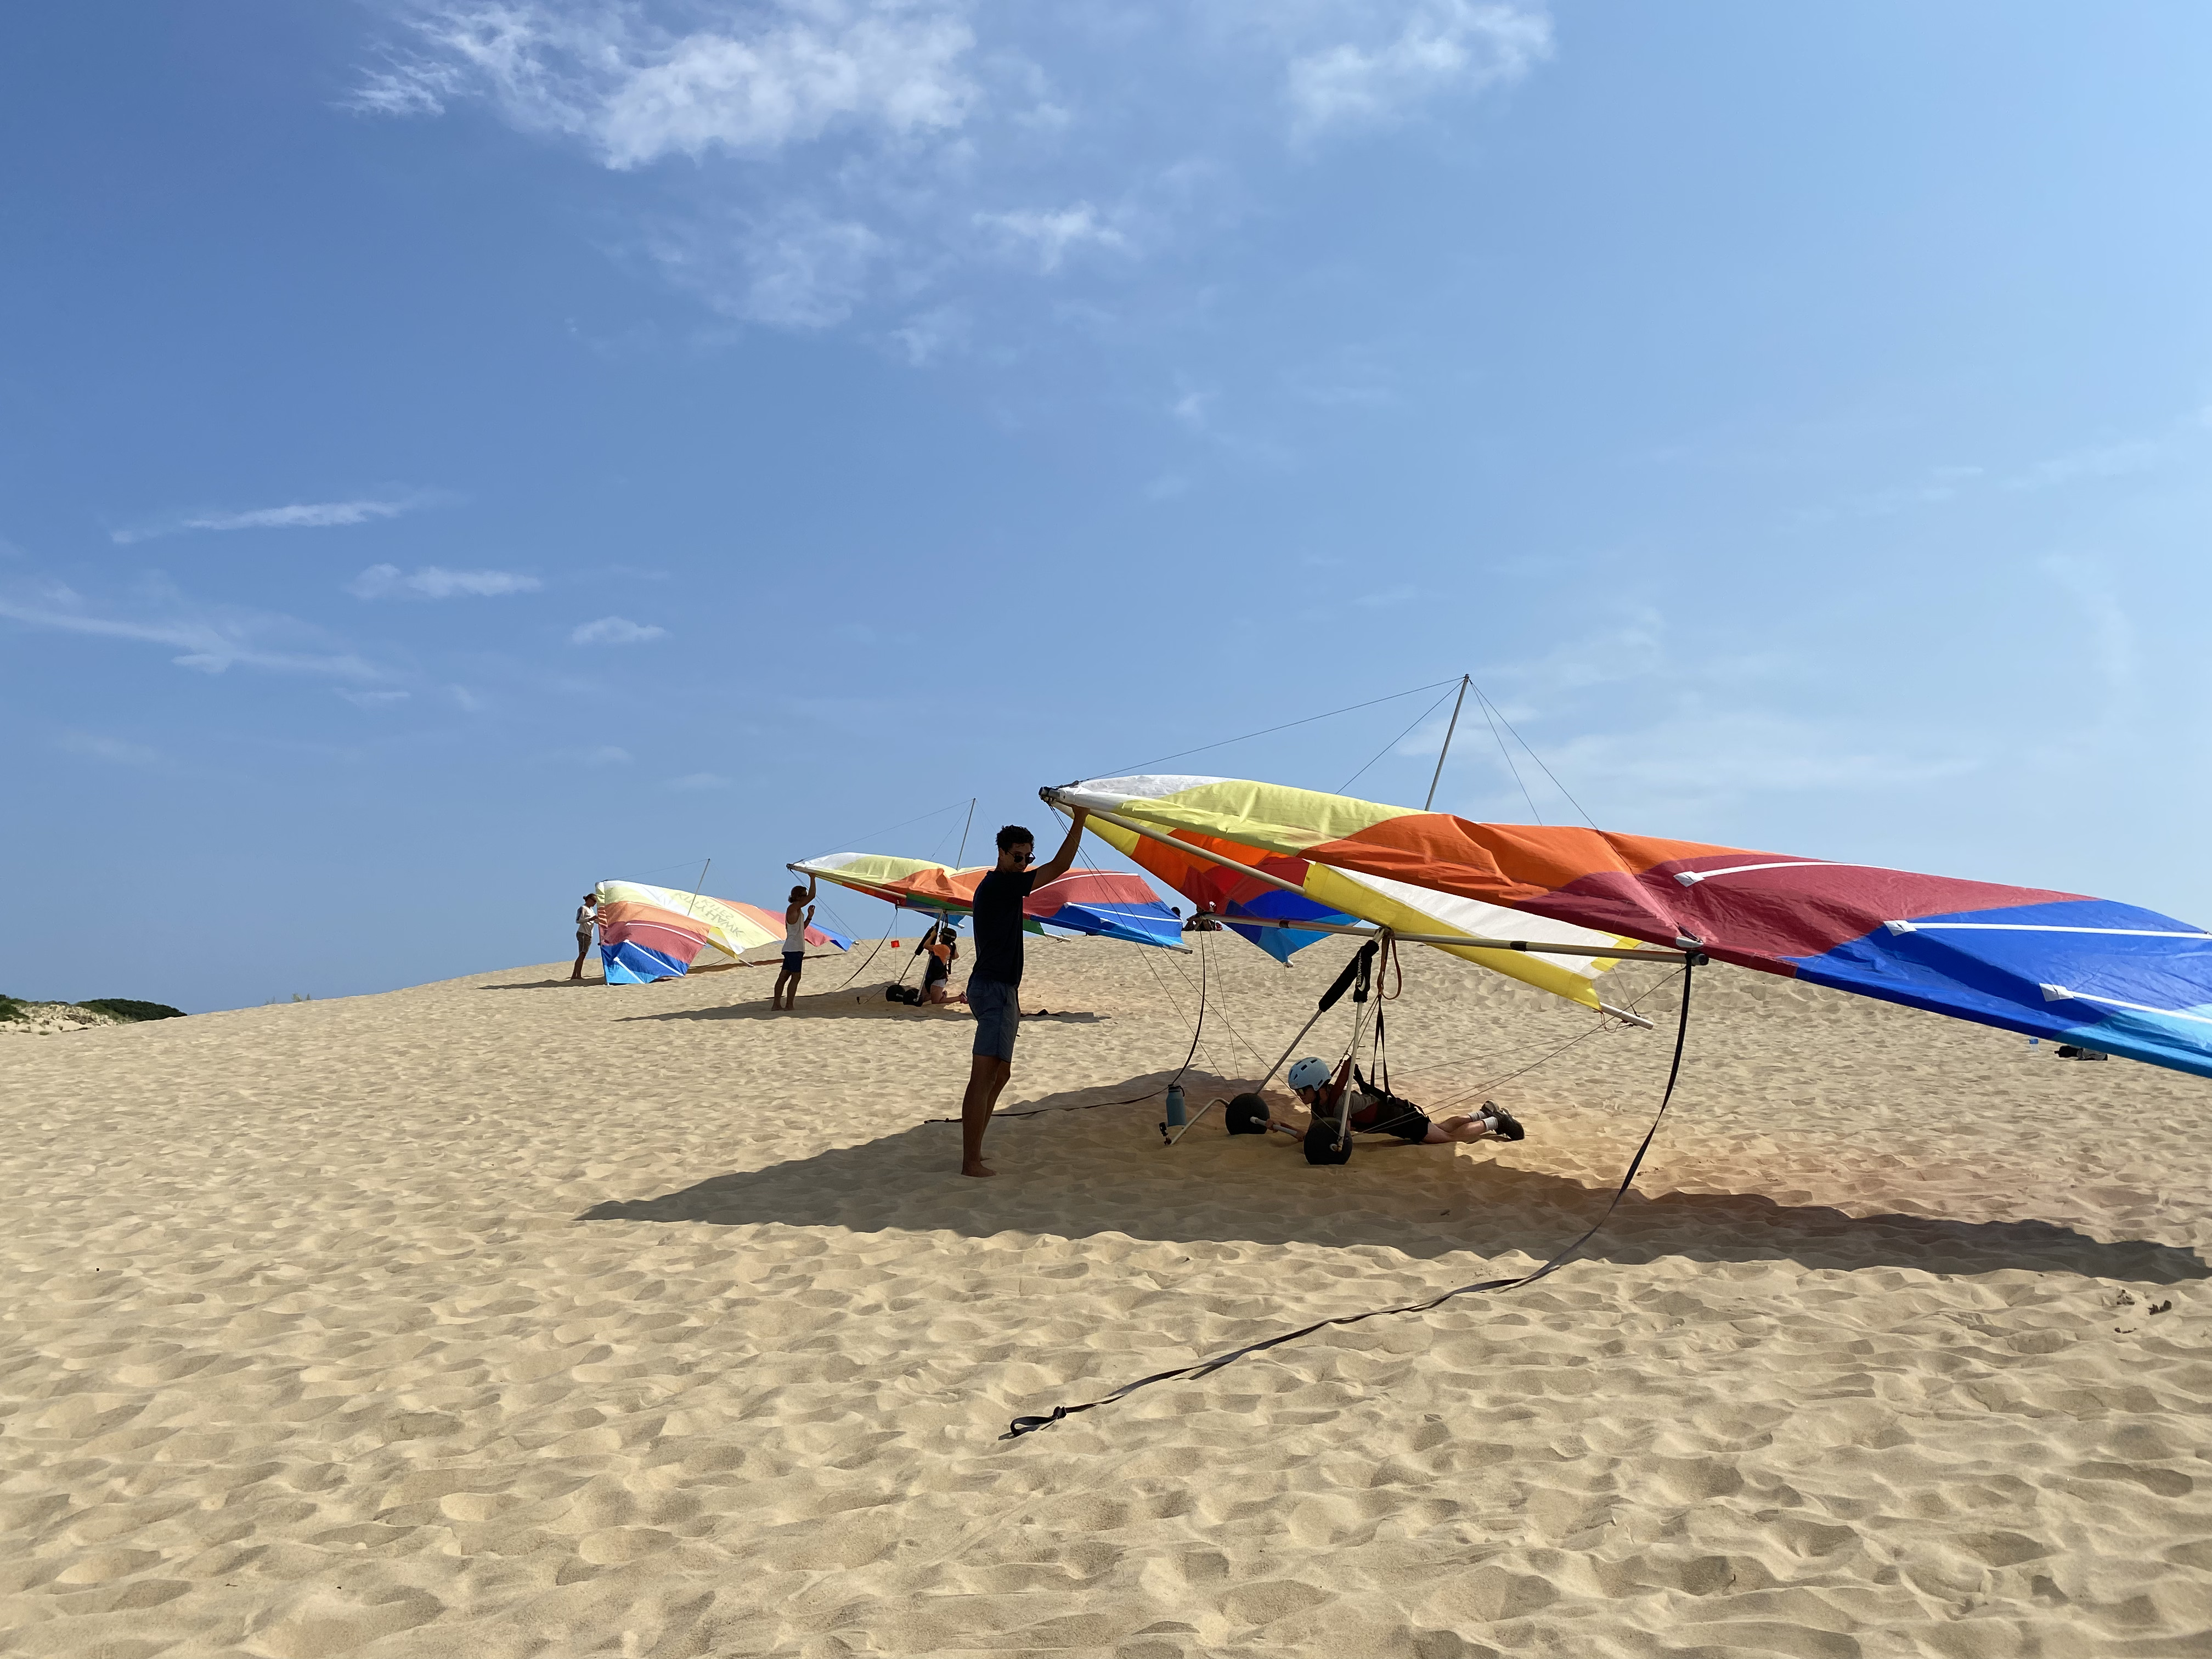 Hang gliding instructor and student